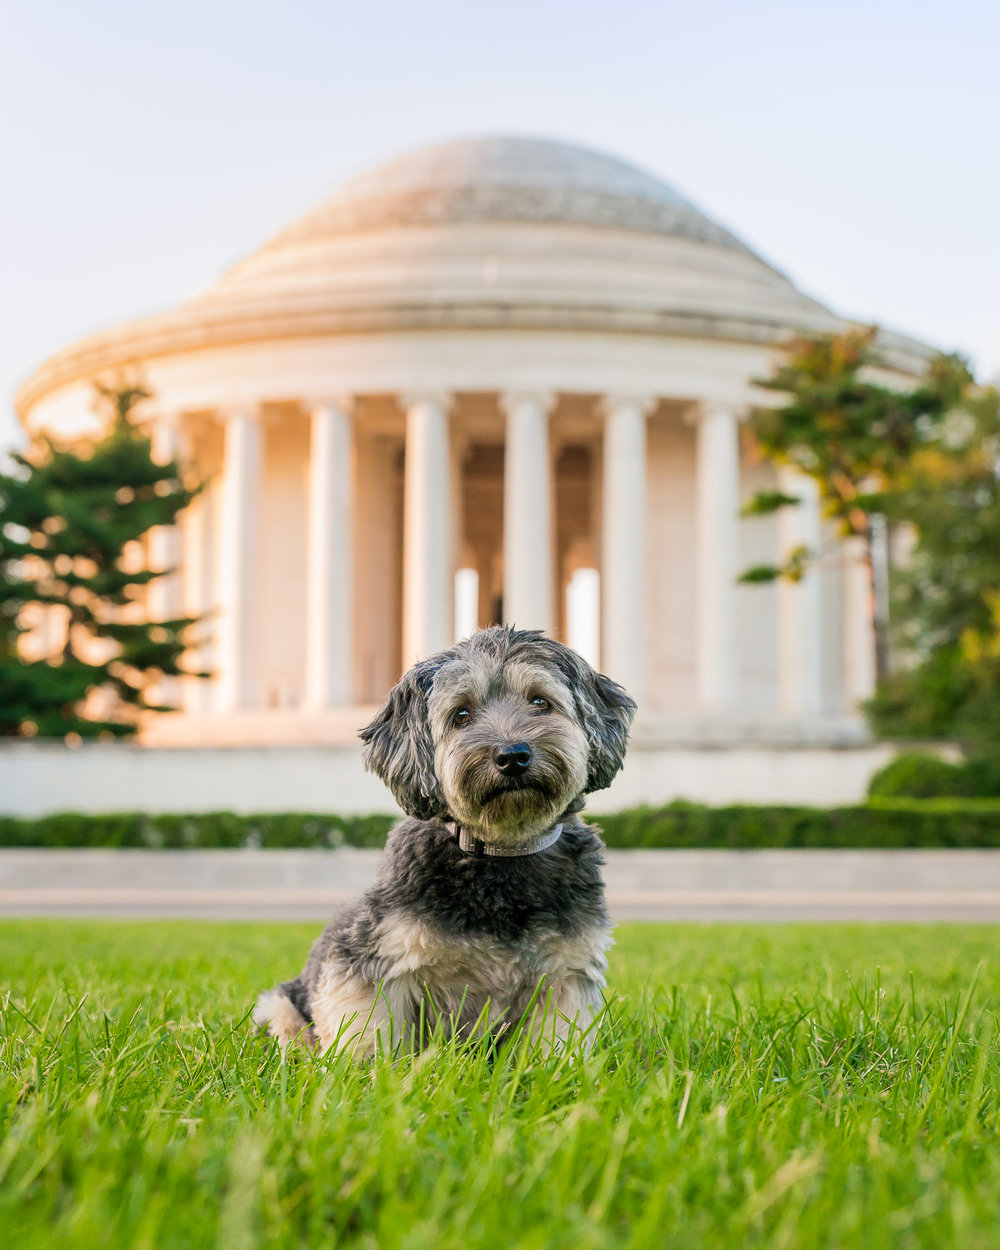 Pablo looks so cute while sitting near the backside of Jefferson Memorial